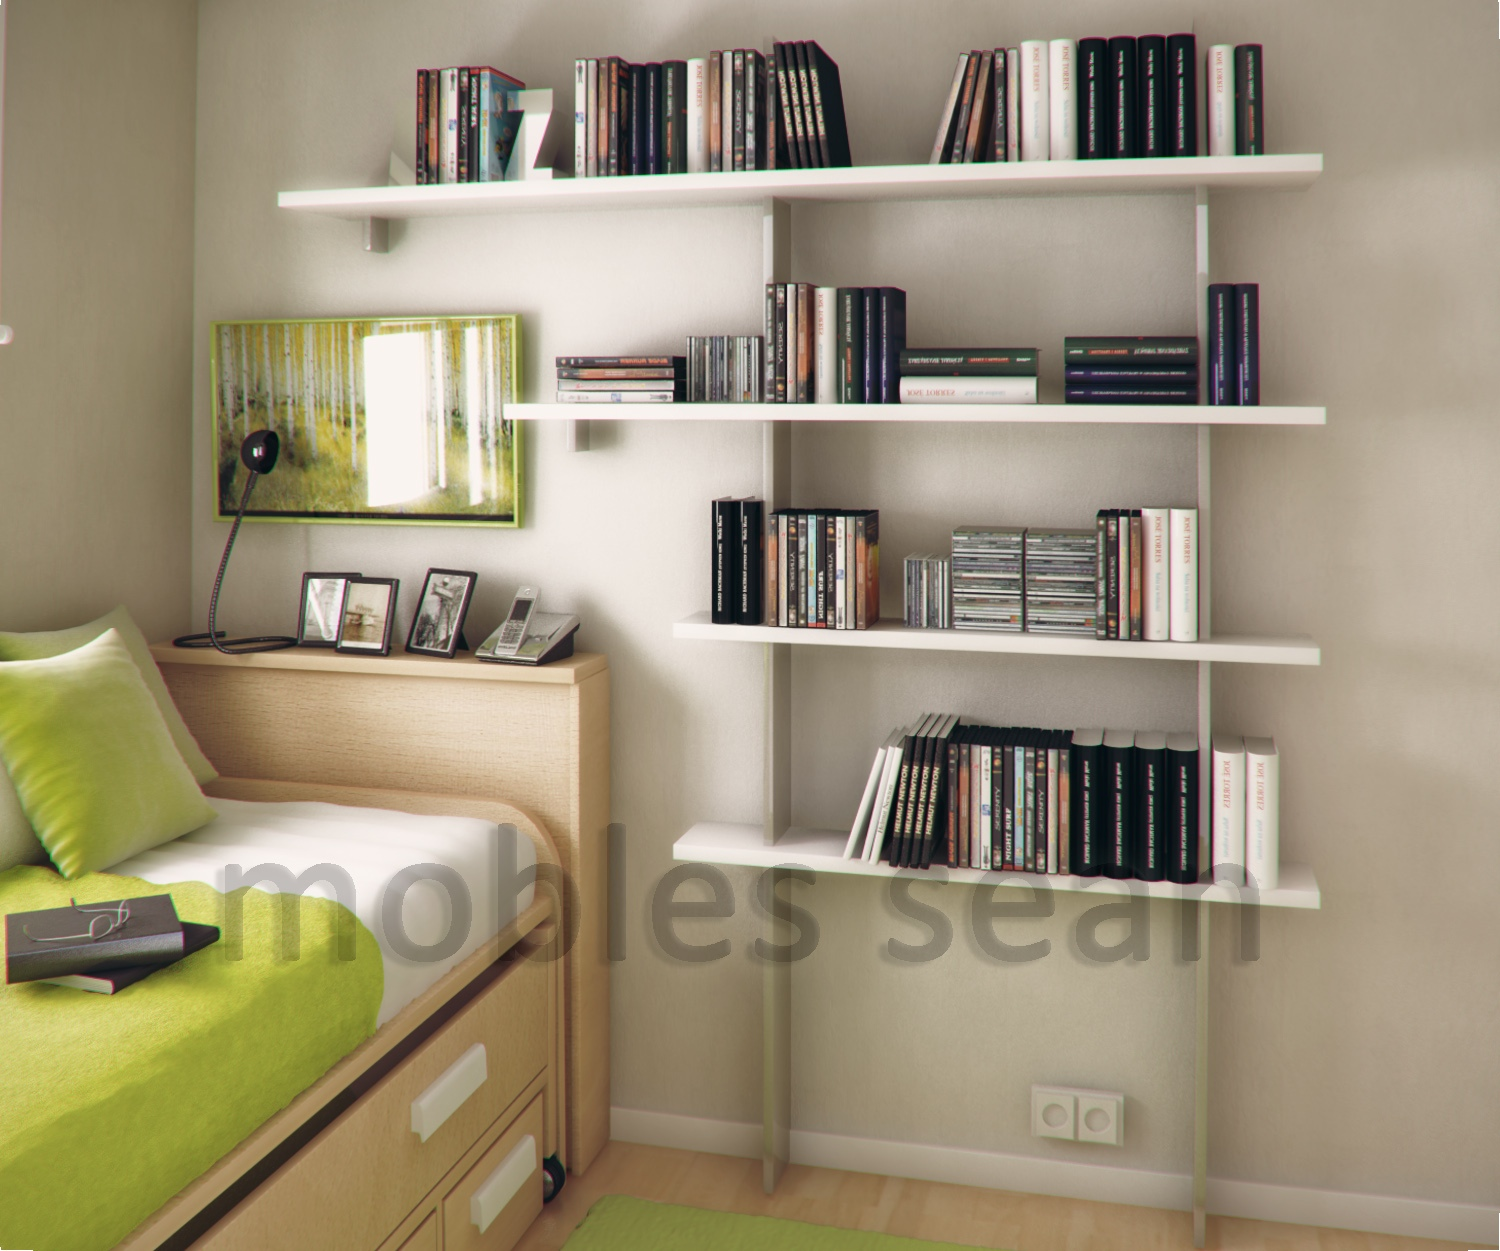 Enjoyable Space Saving Designs For Small Kids Rooms Largest Home Design Picture Inspirations Pitcheantrous